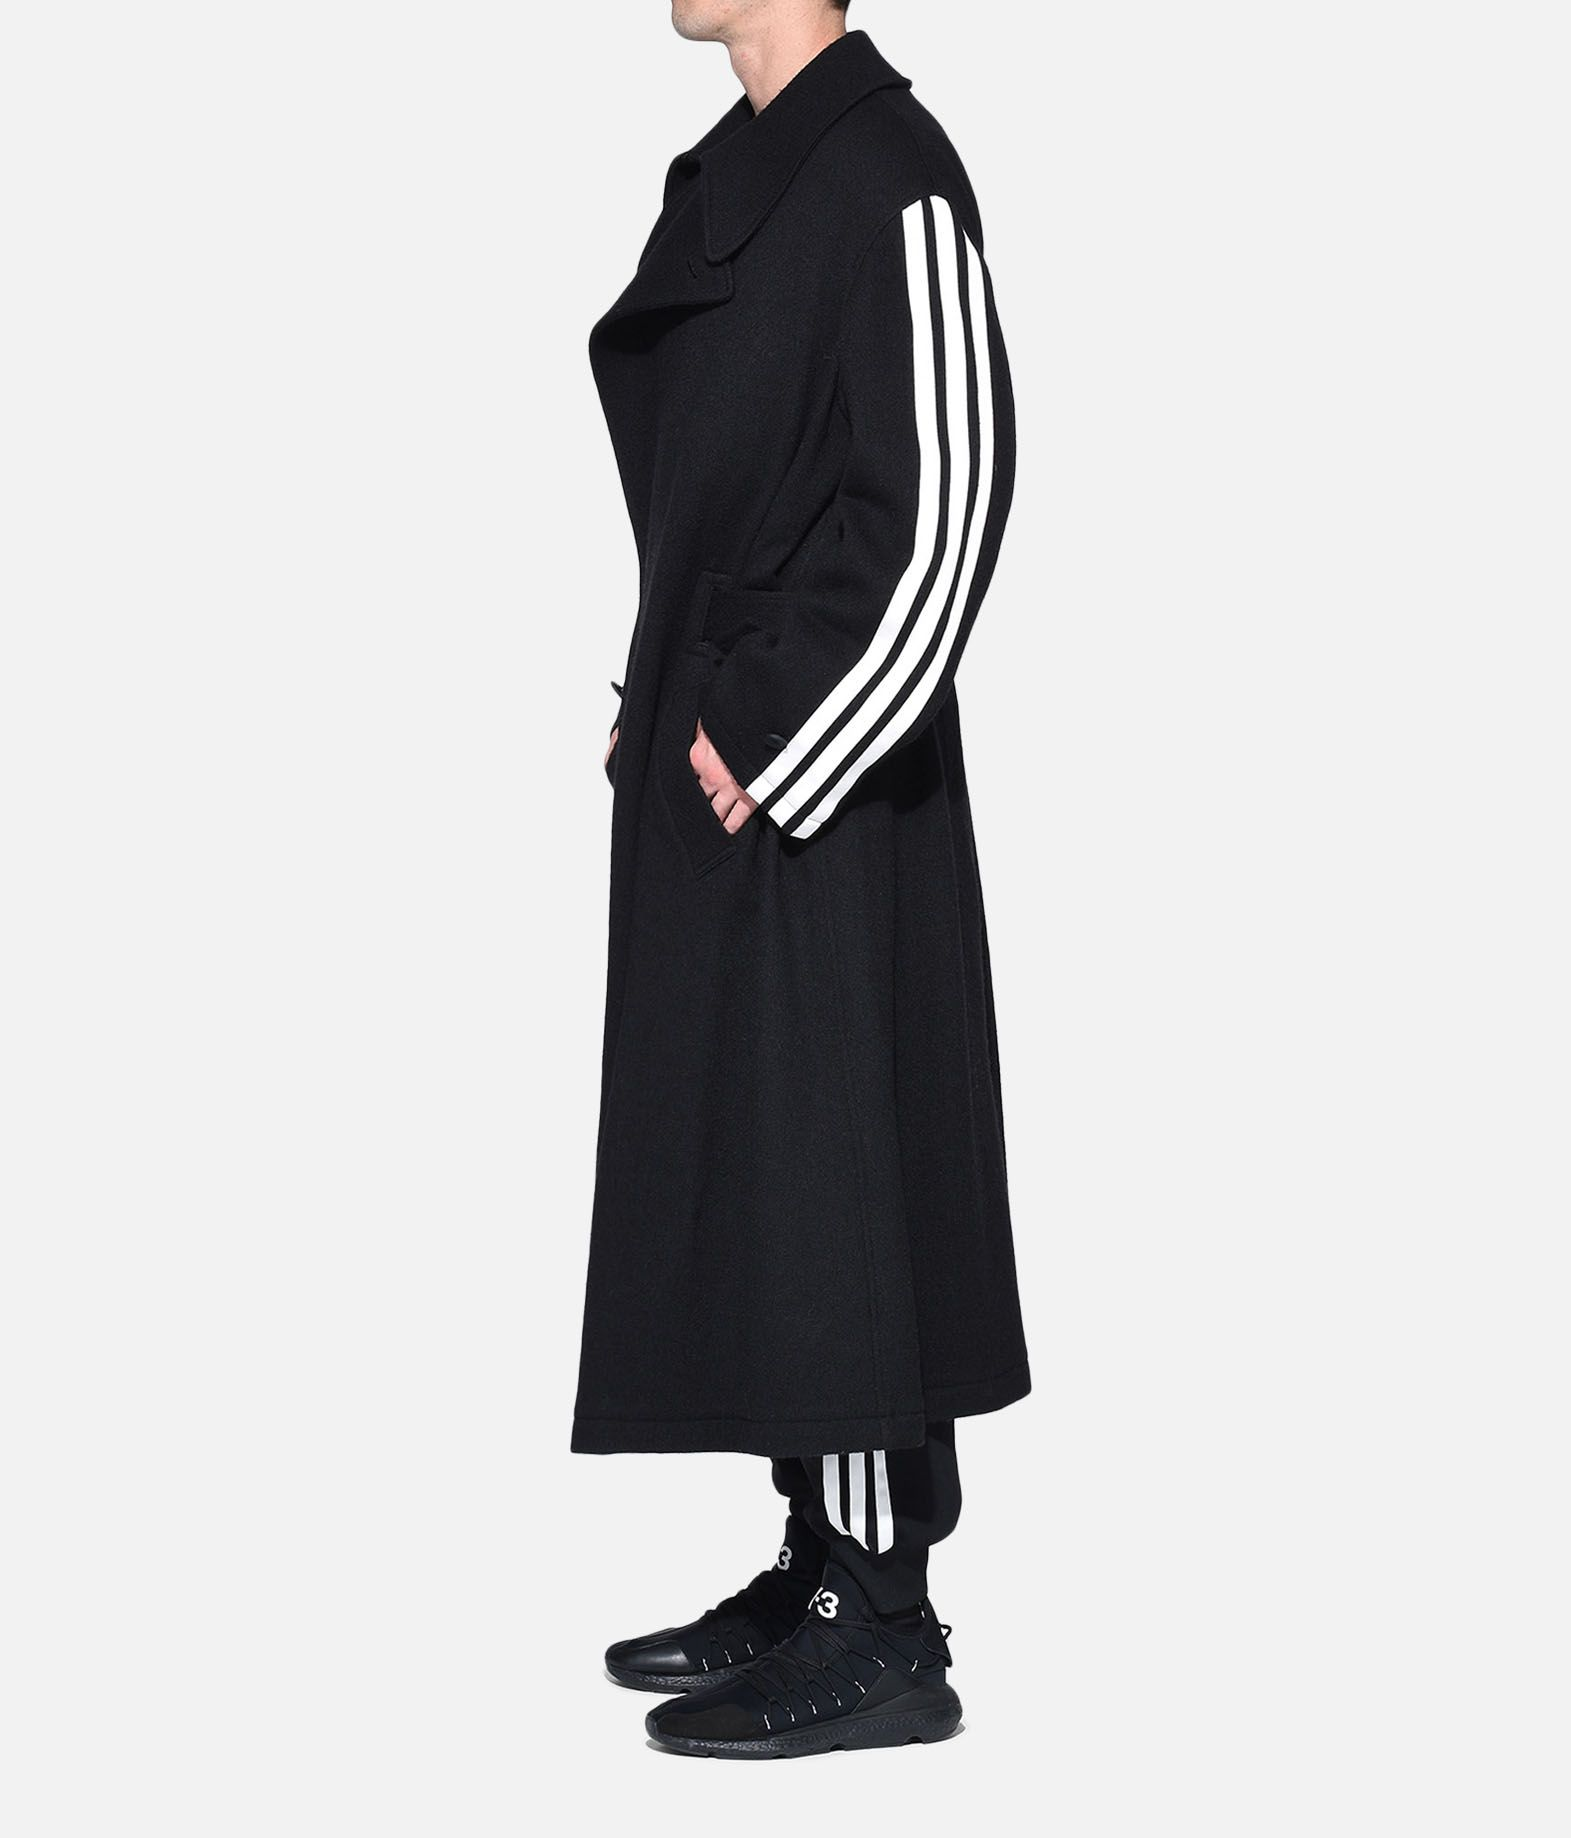 Y-3 Y-3 Tailored Wool Coat Coat Man a